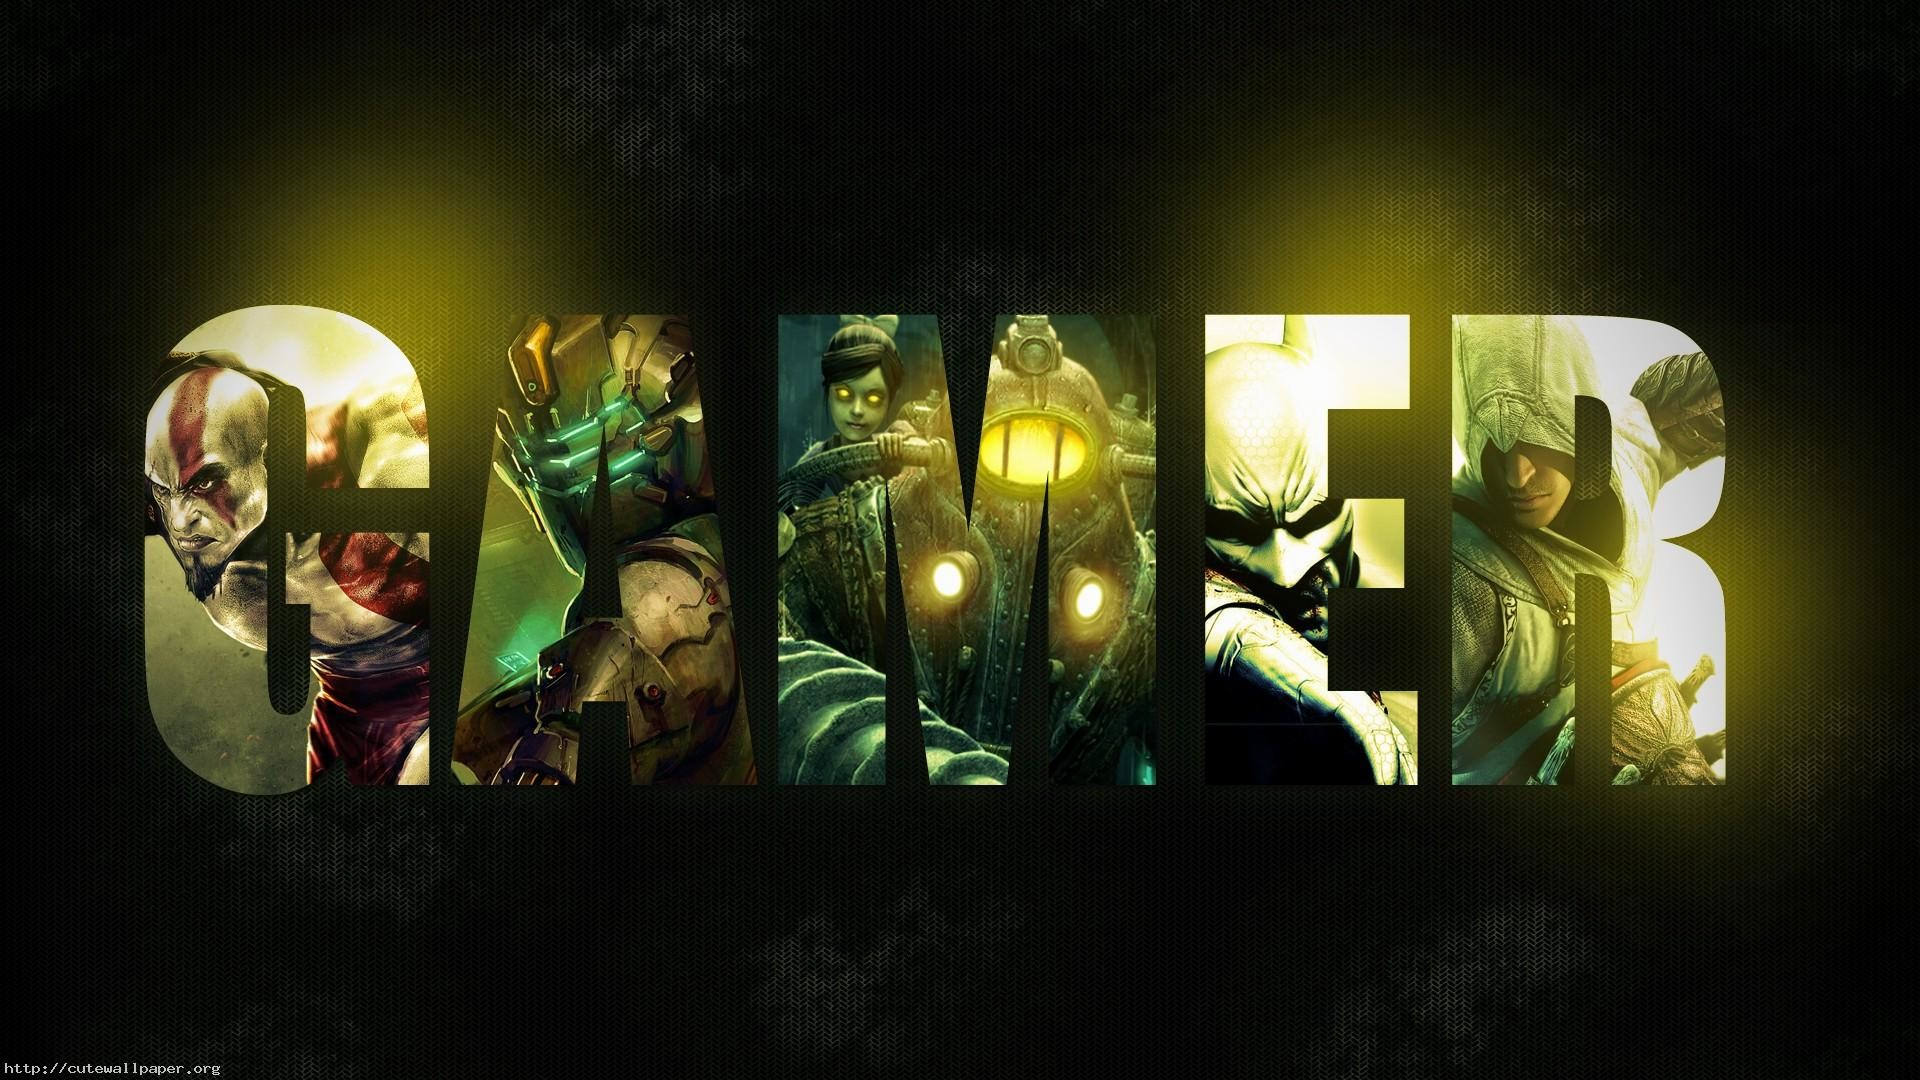 Bioshock god-of-war assassin's-creed dead-space video-games games collages  wallpaper